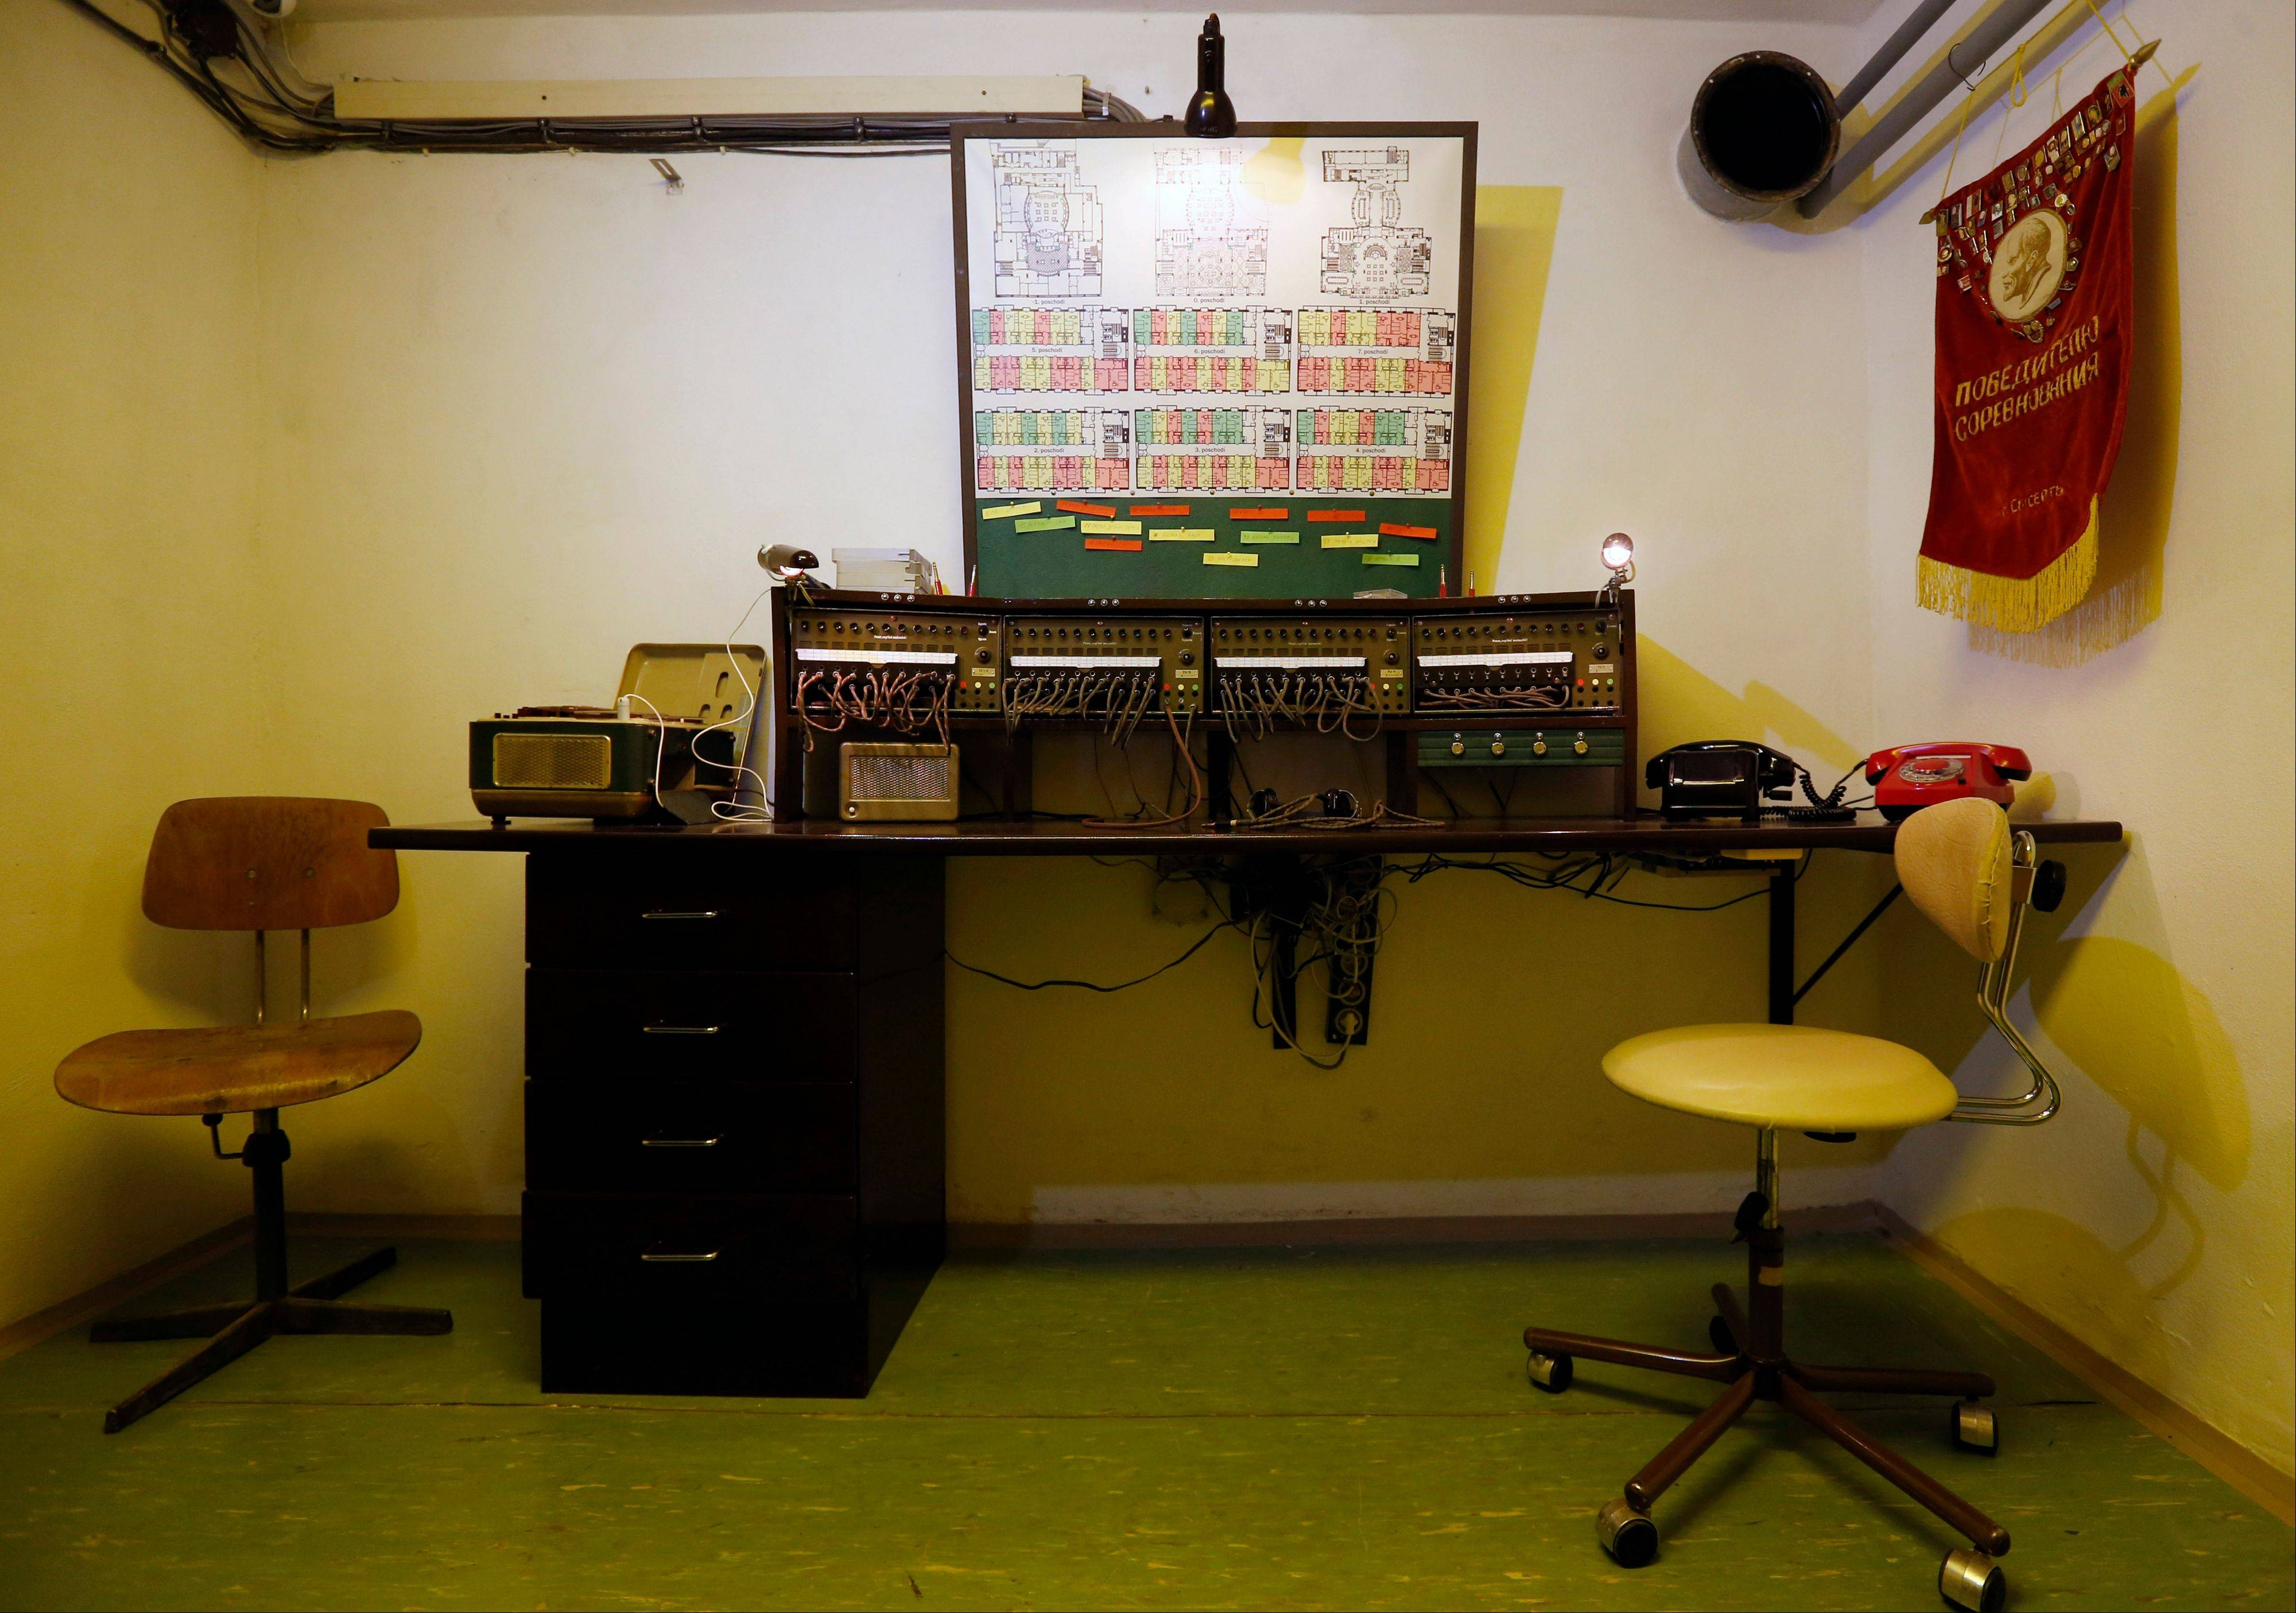 An eavesdropping station is part of an installation at the nuclear shelter from Cold War era at five star Jalta Hotel in downtown Prague, Czech Republic.